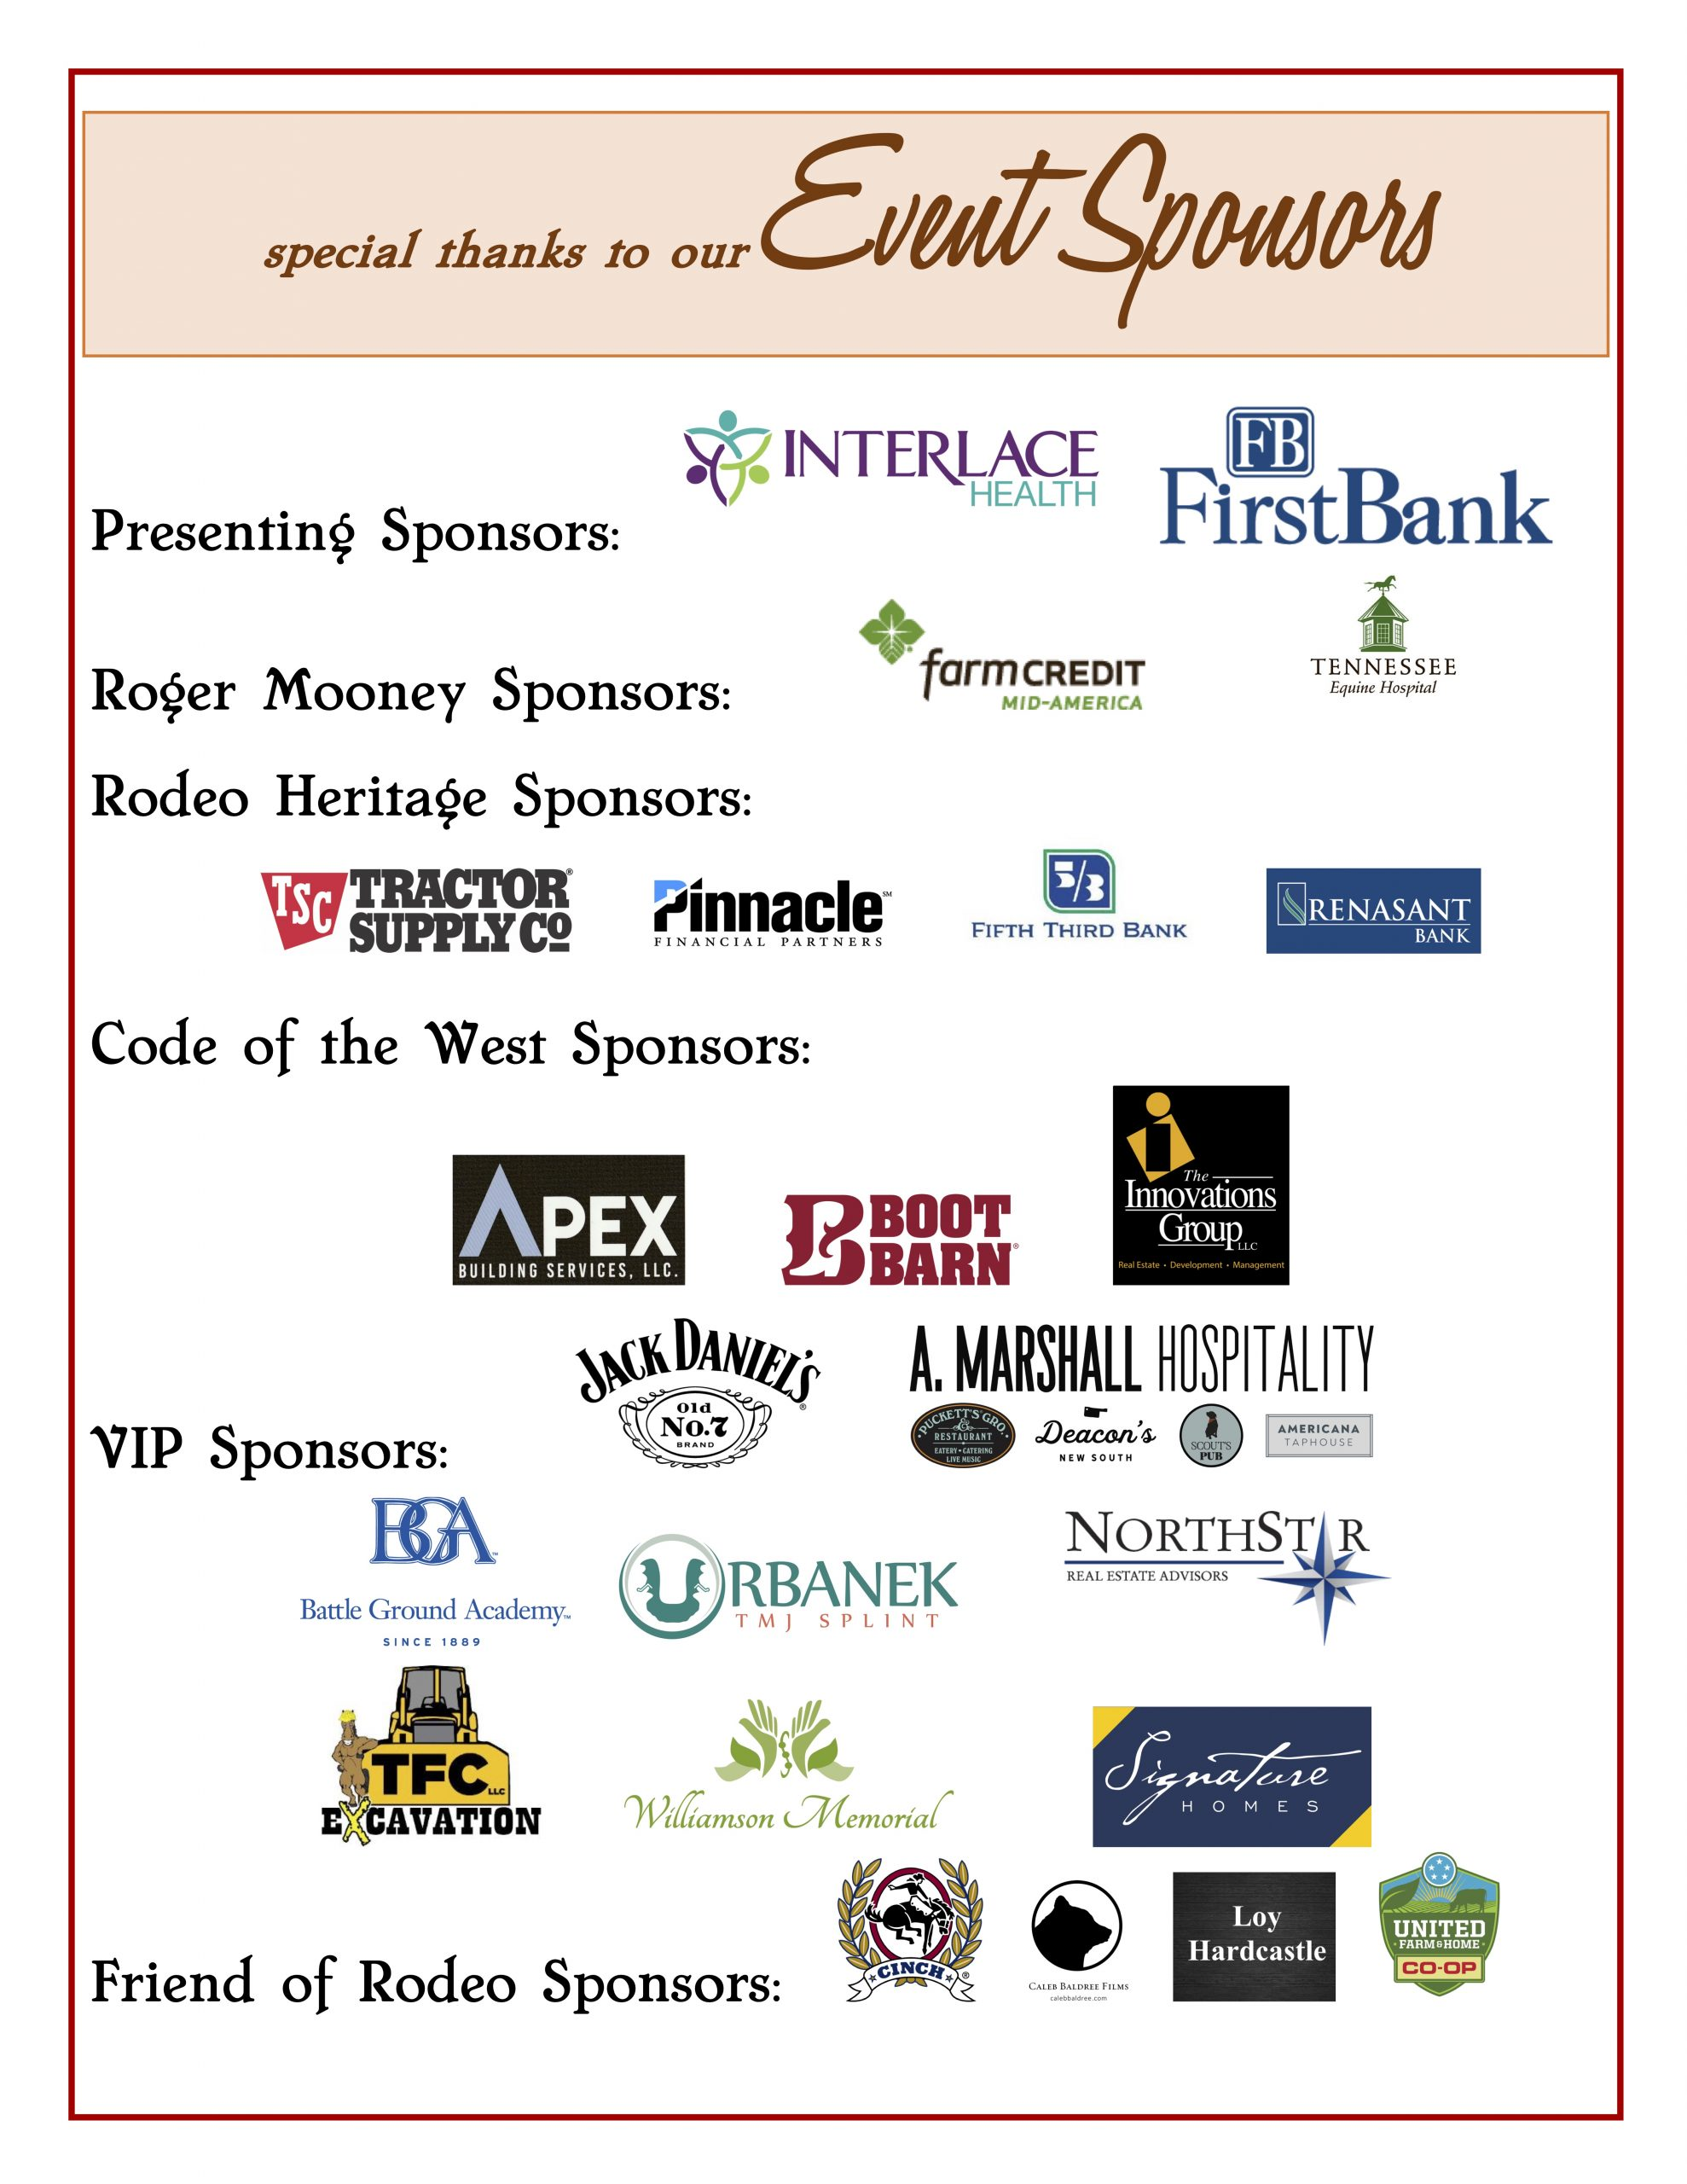 special-thanks-to-our-event-sponsors